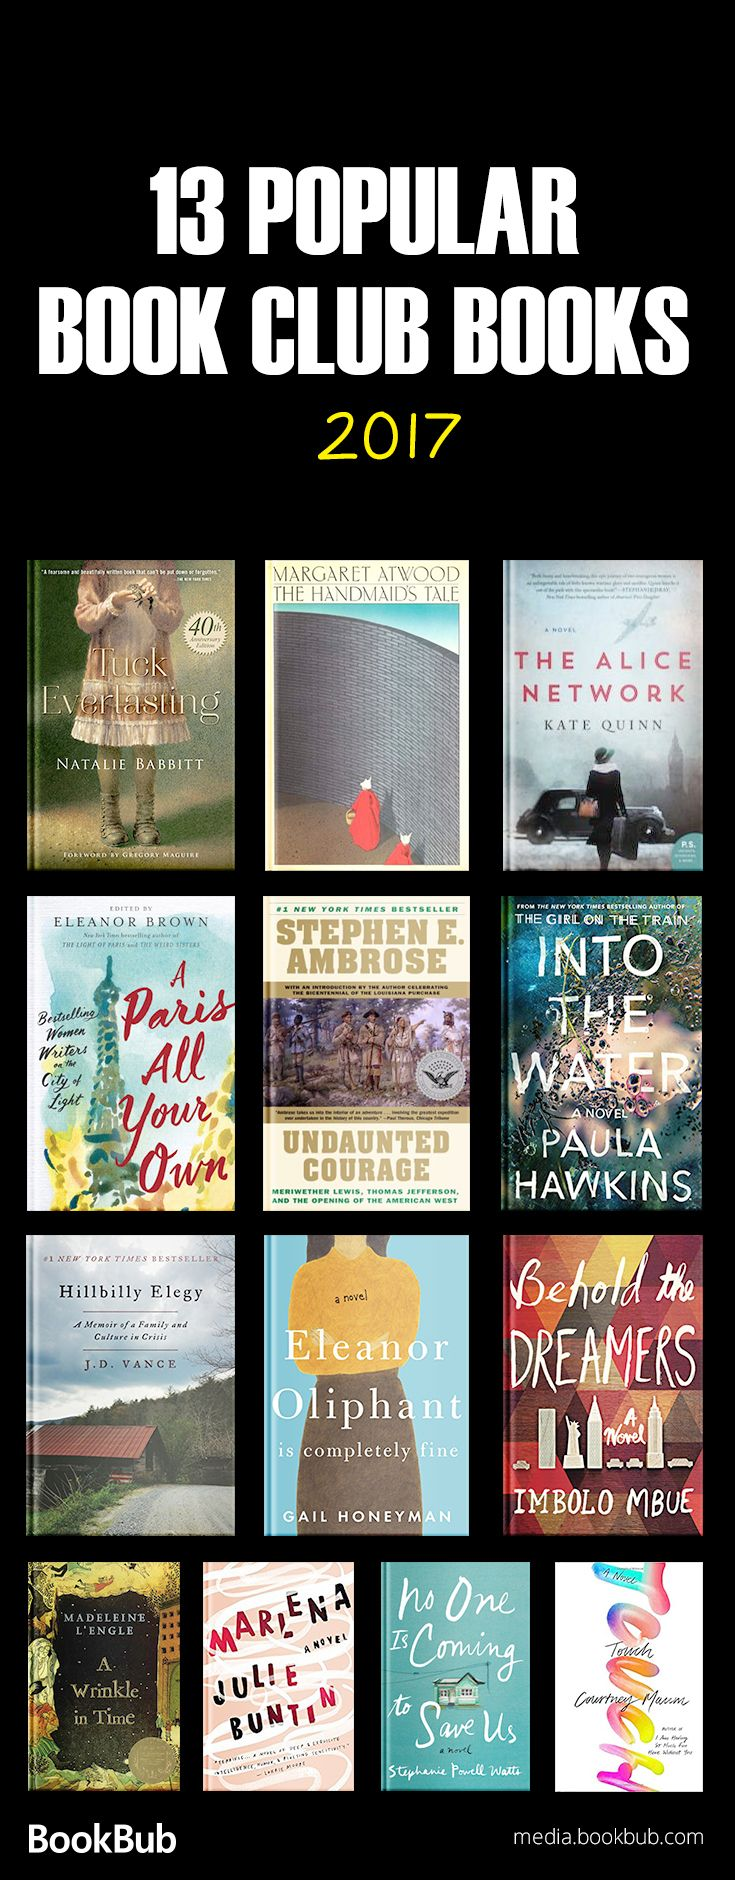 13 of the best book club books of 2017, including a great list of books for women.